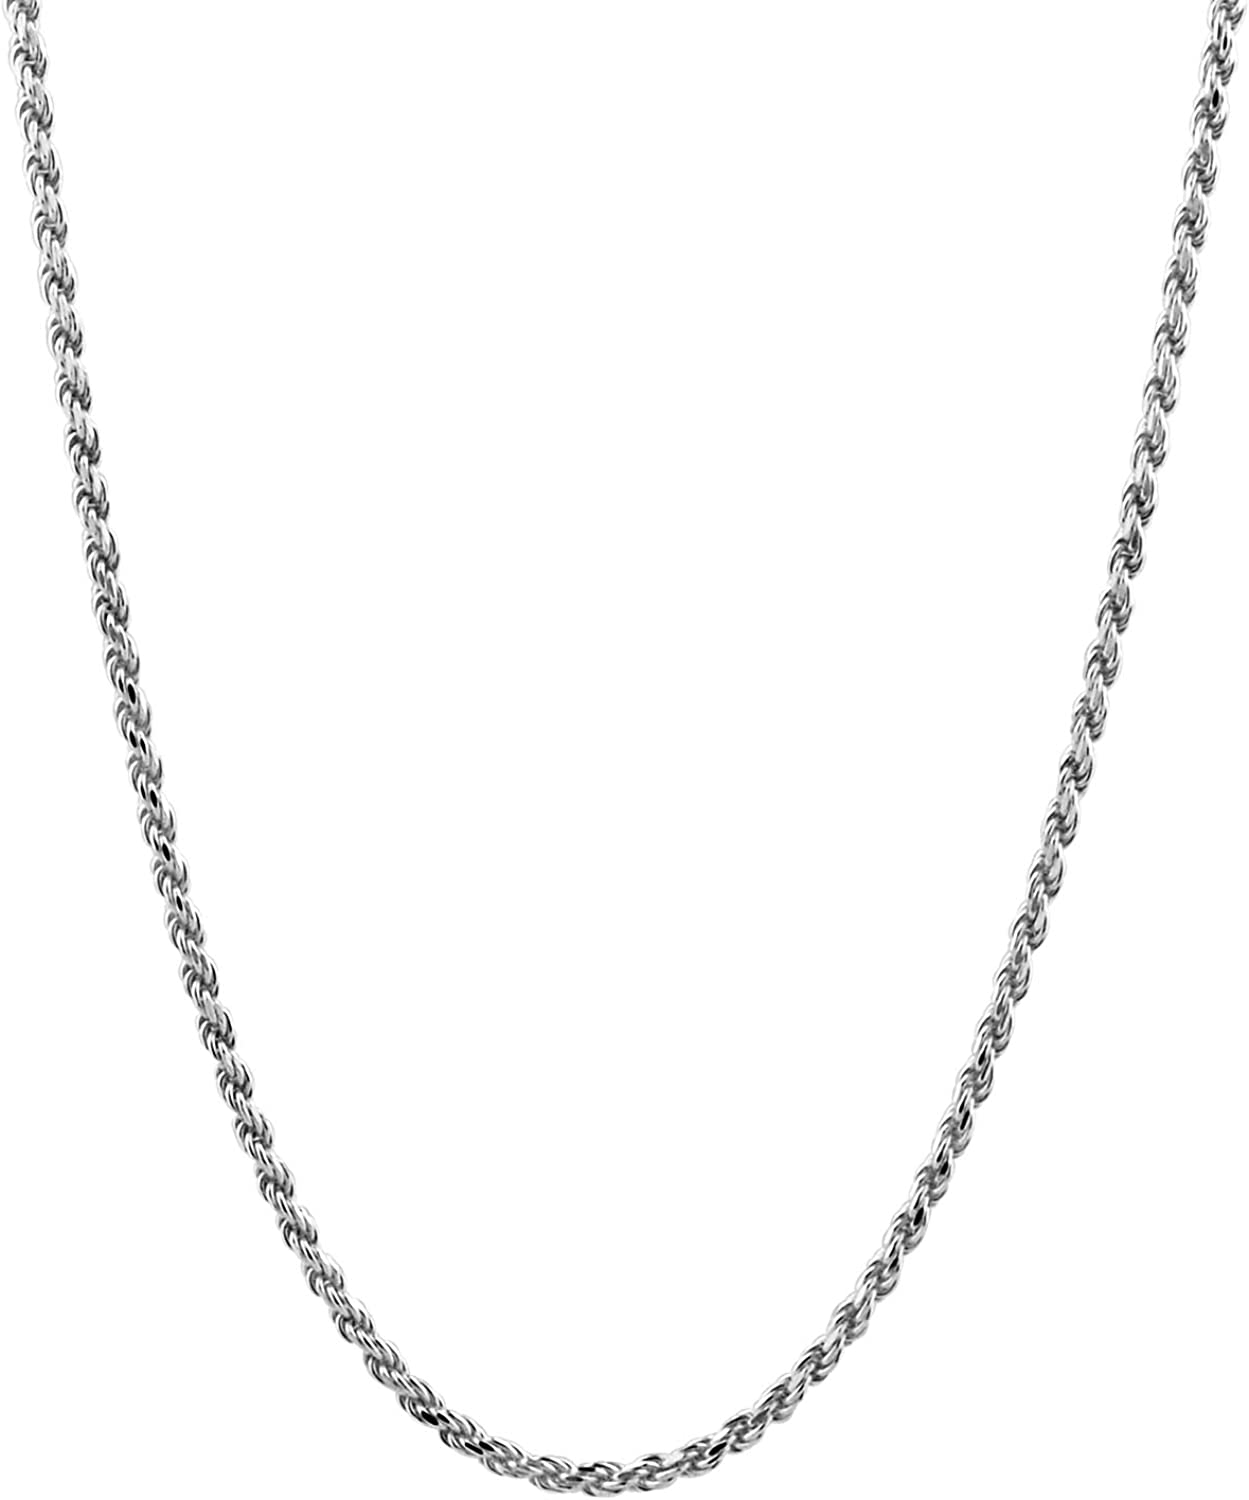 VARIOUS LENGTHS AVAILABLE 1.2mm STERLING SILVER UNISEX ROPE NECKLACE